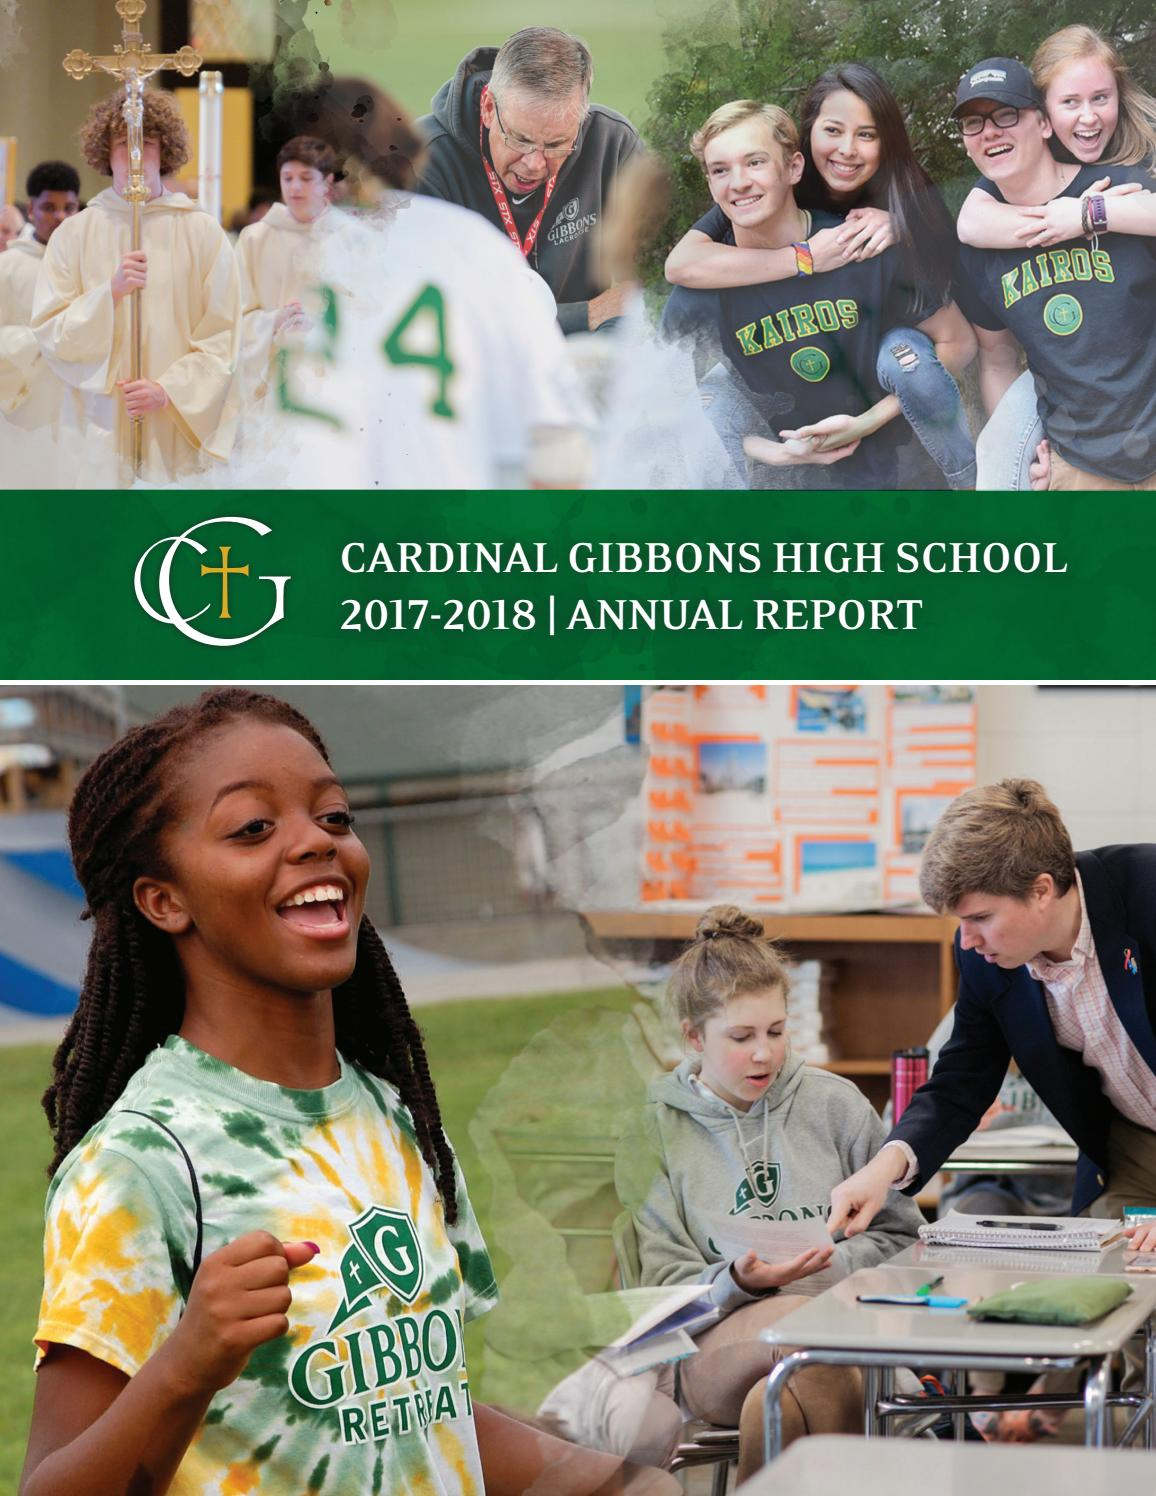 3bfdae2ee9 Cardinal Gibbons High School 2017-2018 Annual Report by Cardinal ...